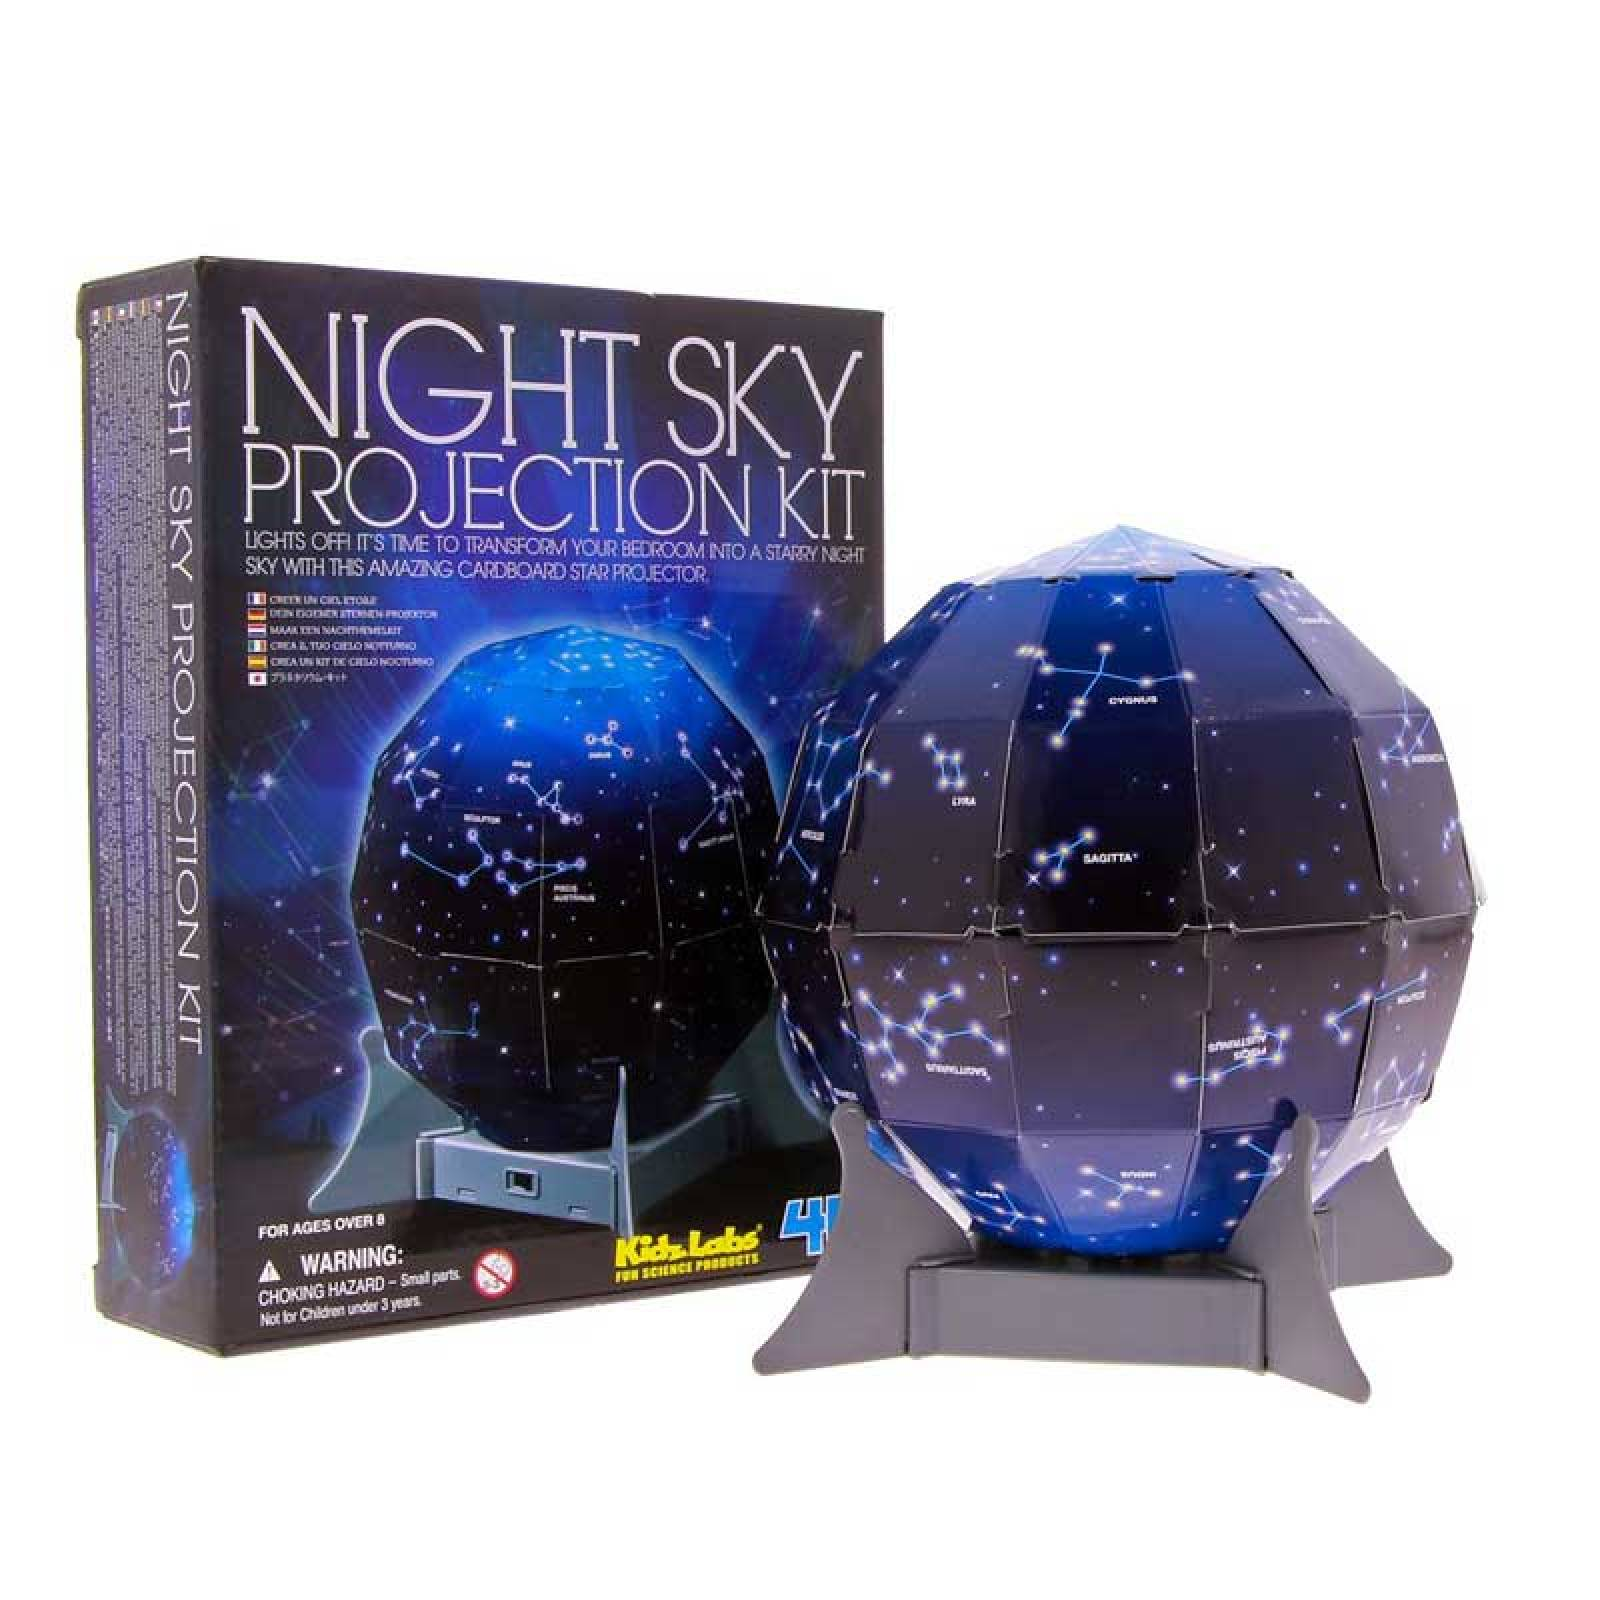 Night Sky Projection Kit Science Kit 8+